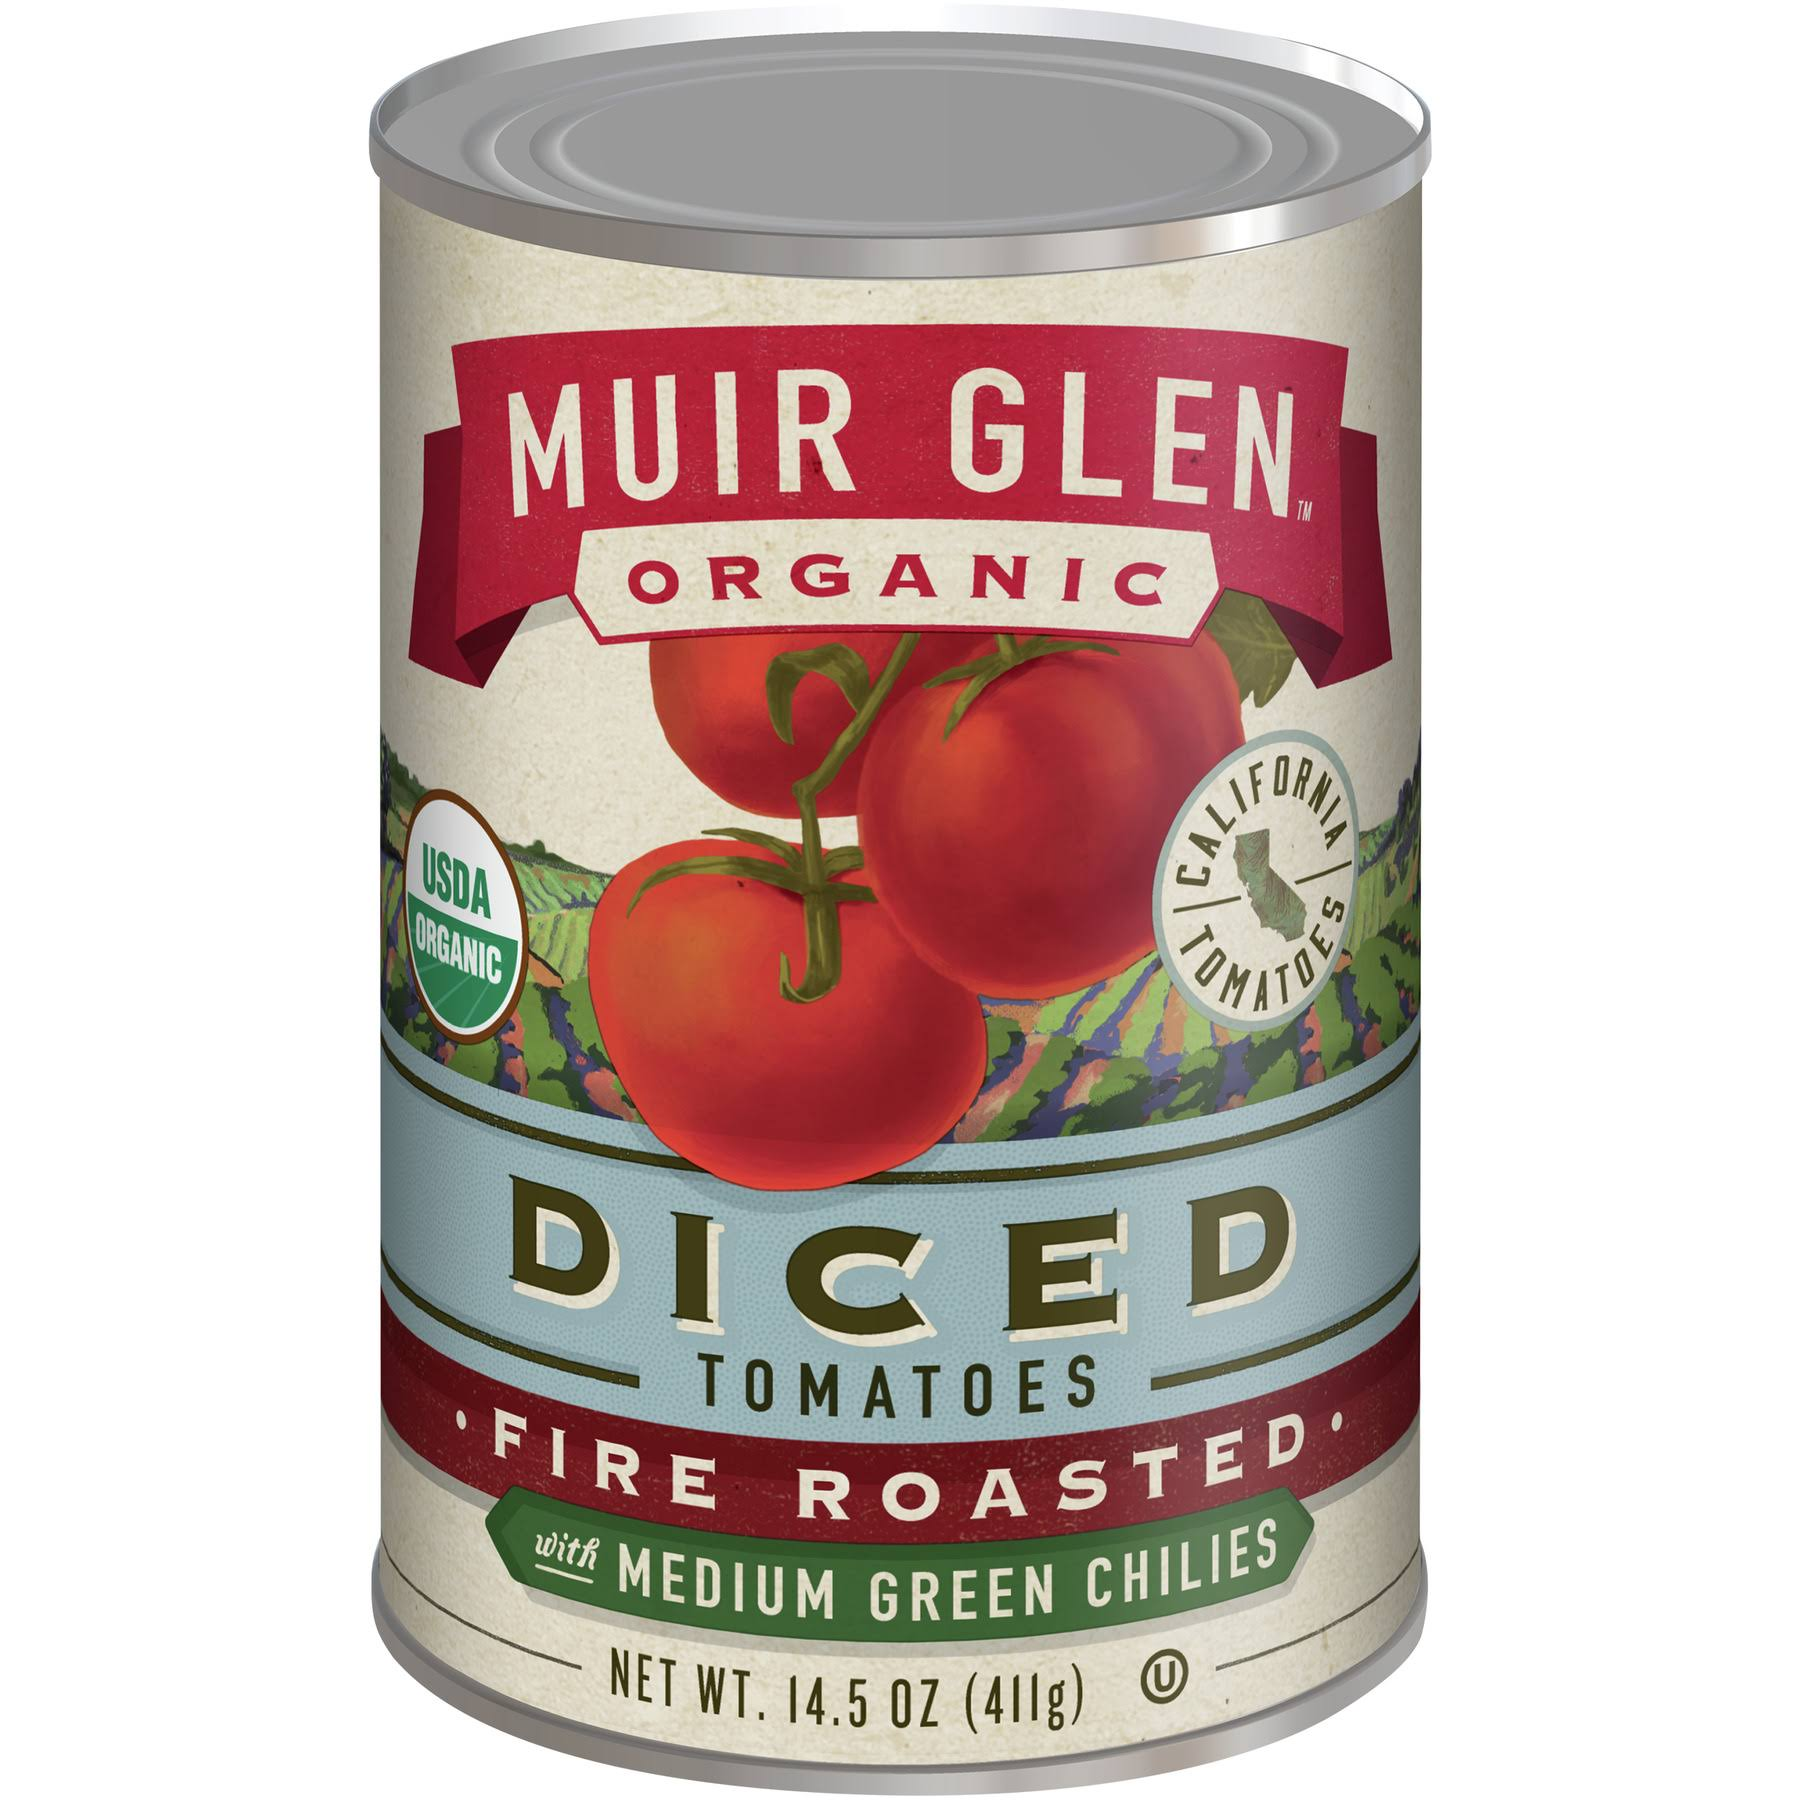 Muir Glen Organic Diced Tomatoes With Medium Green Chilles - Fire Roasted